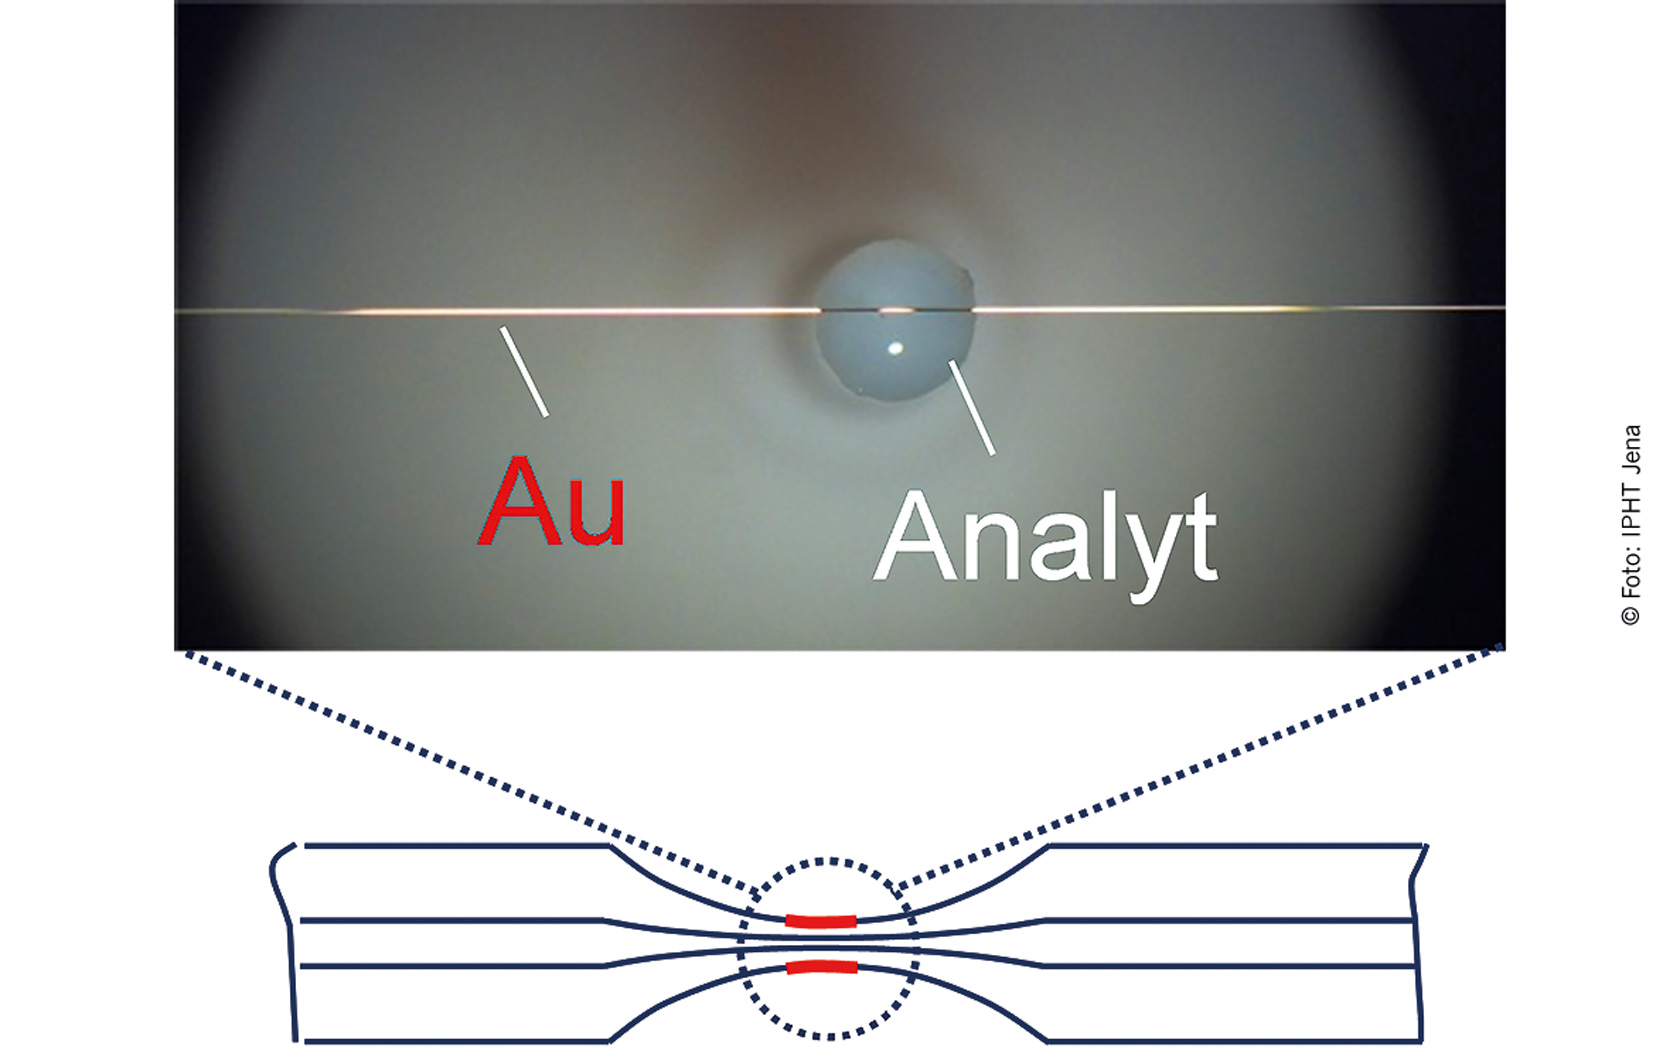 Fig. 4 Gold-coated optical fibre with analyte